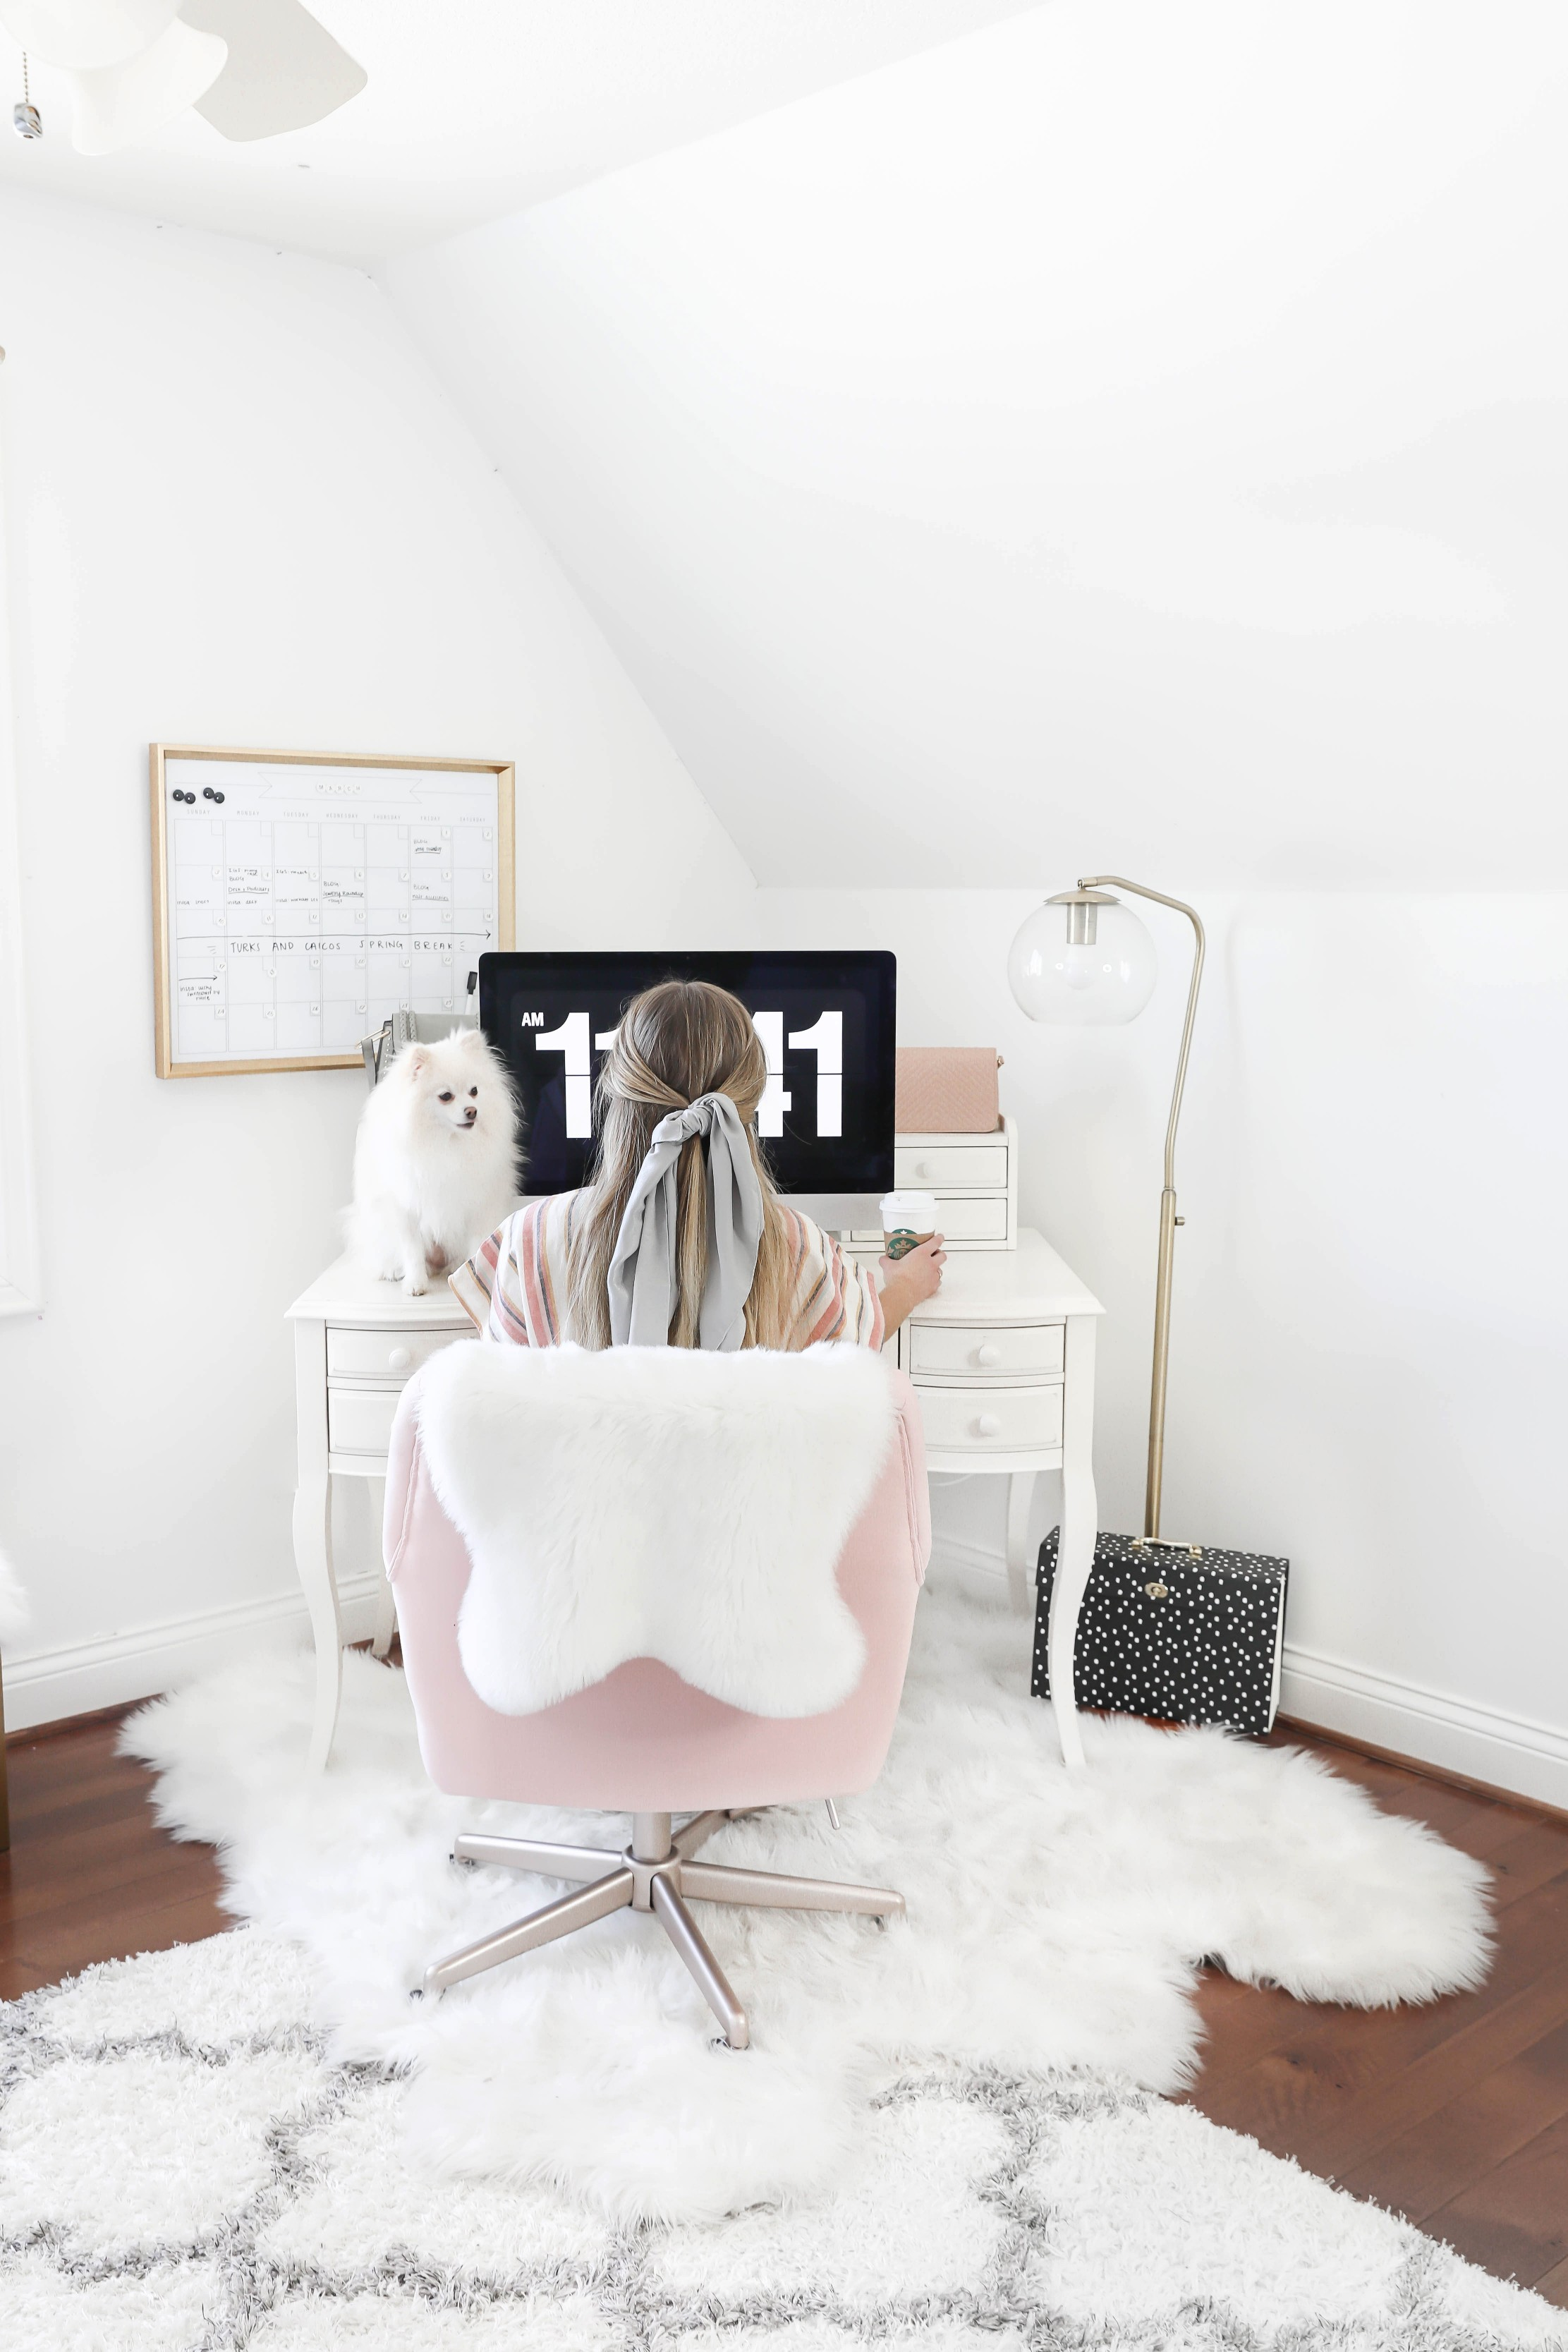 Office tour! Ultimate desk goals for the girl boss! I love this super comfy pink desk chair! I had been looking for a new chair and found the perfect one! The space looks so cute with my faux sheep fuzzy rug, and all the white, black, gold and pink. This is also the cutest gold dry erase calendar! Details on fashion and lifestyle blog daily dose of charm by lauren lindmark